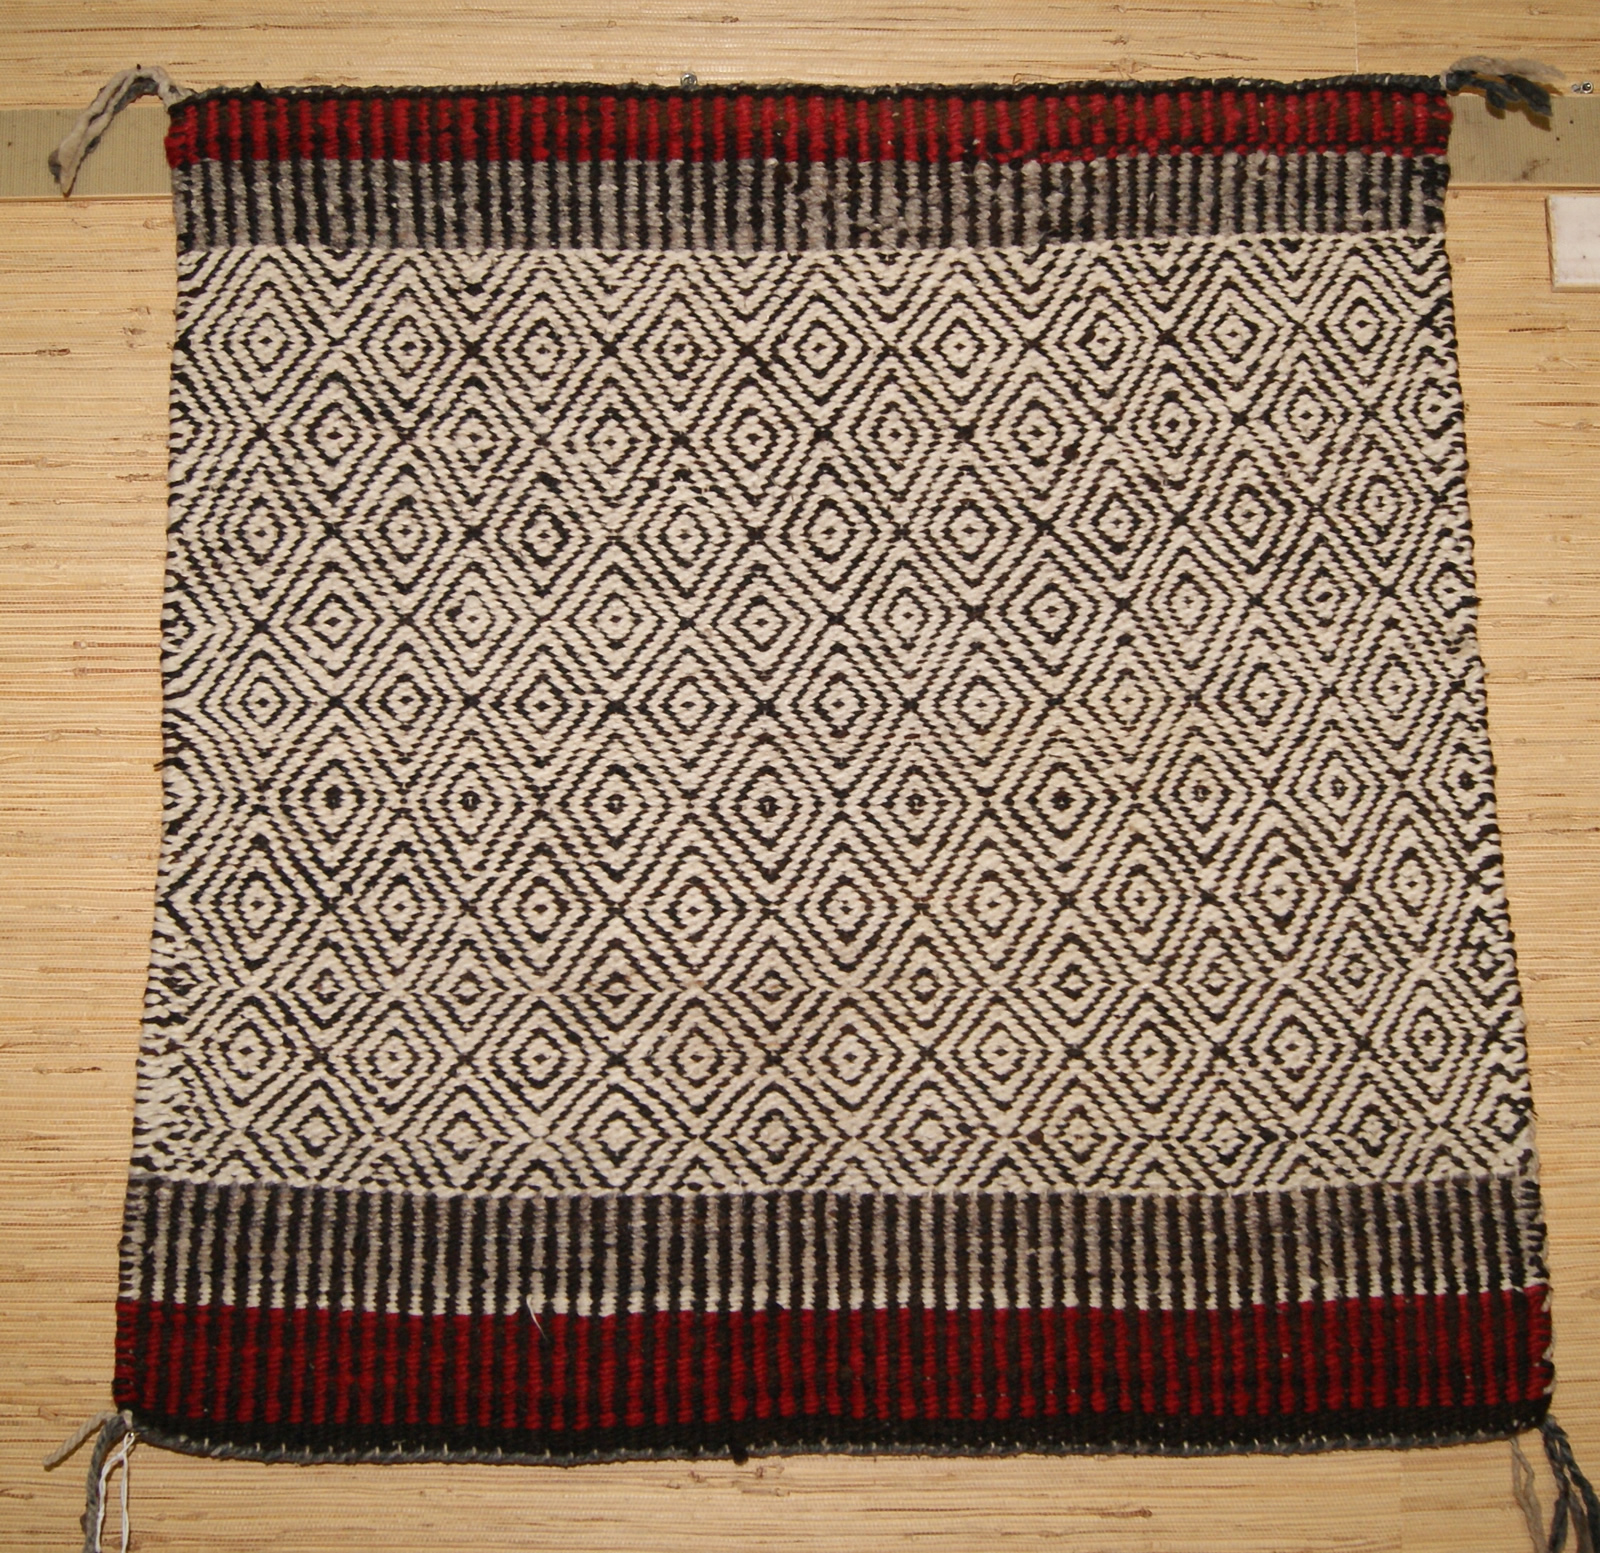 Twill Weave Navajo Single Saddle Blanket